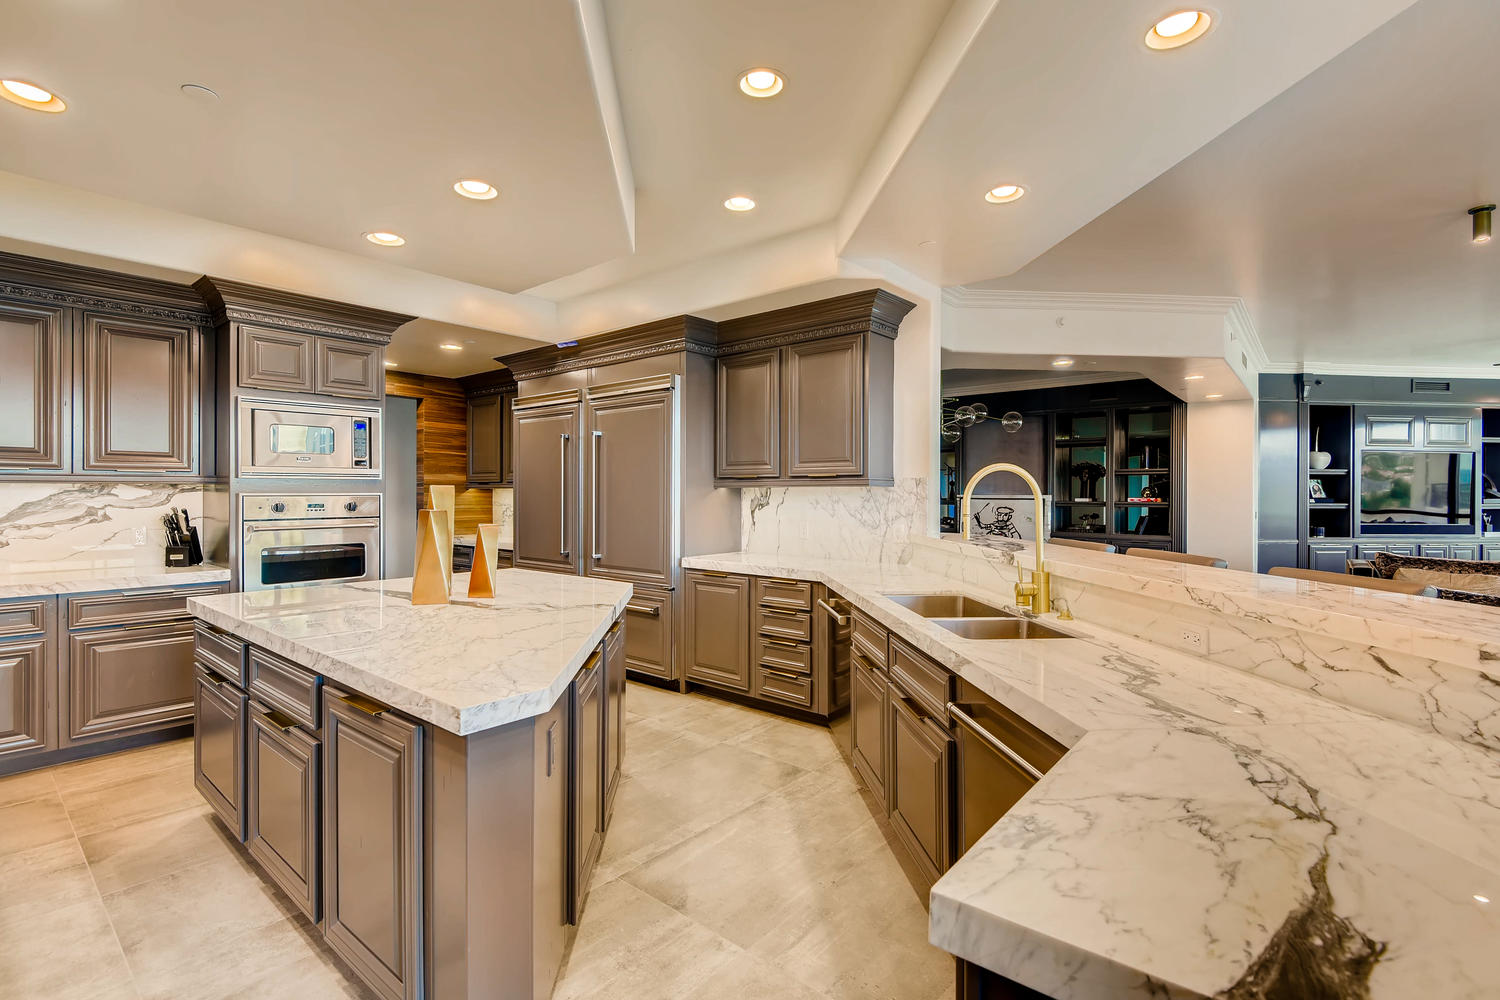 9101-alta-1201-las-vegas-nv-large-010-006-kitchen-1500×1000-72dpi